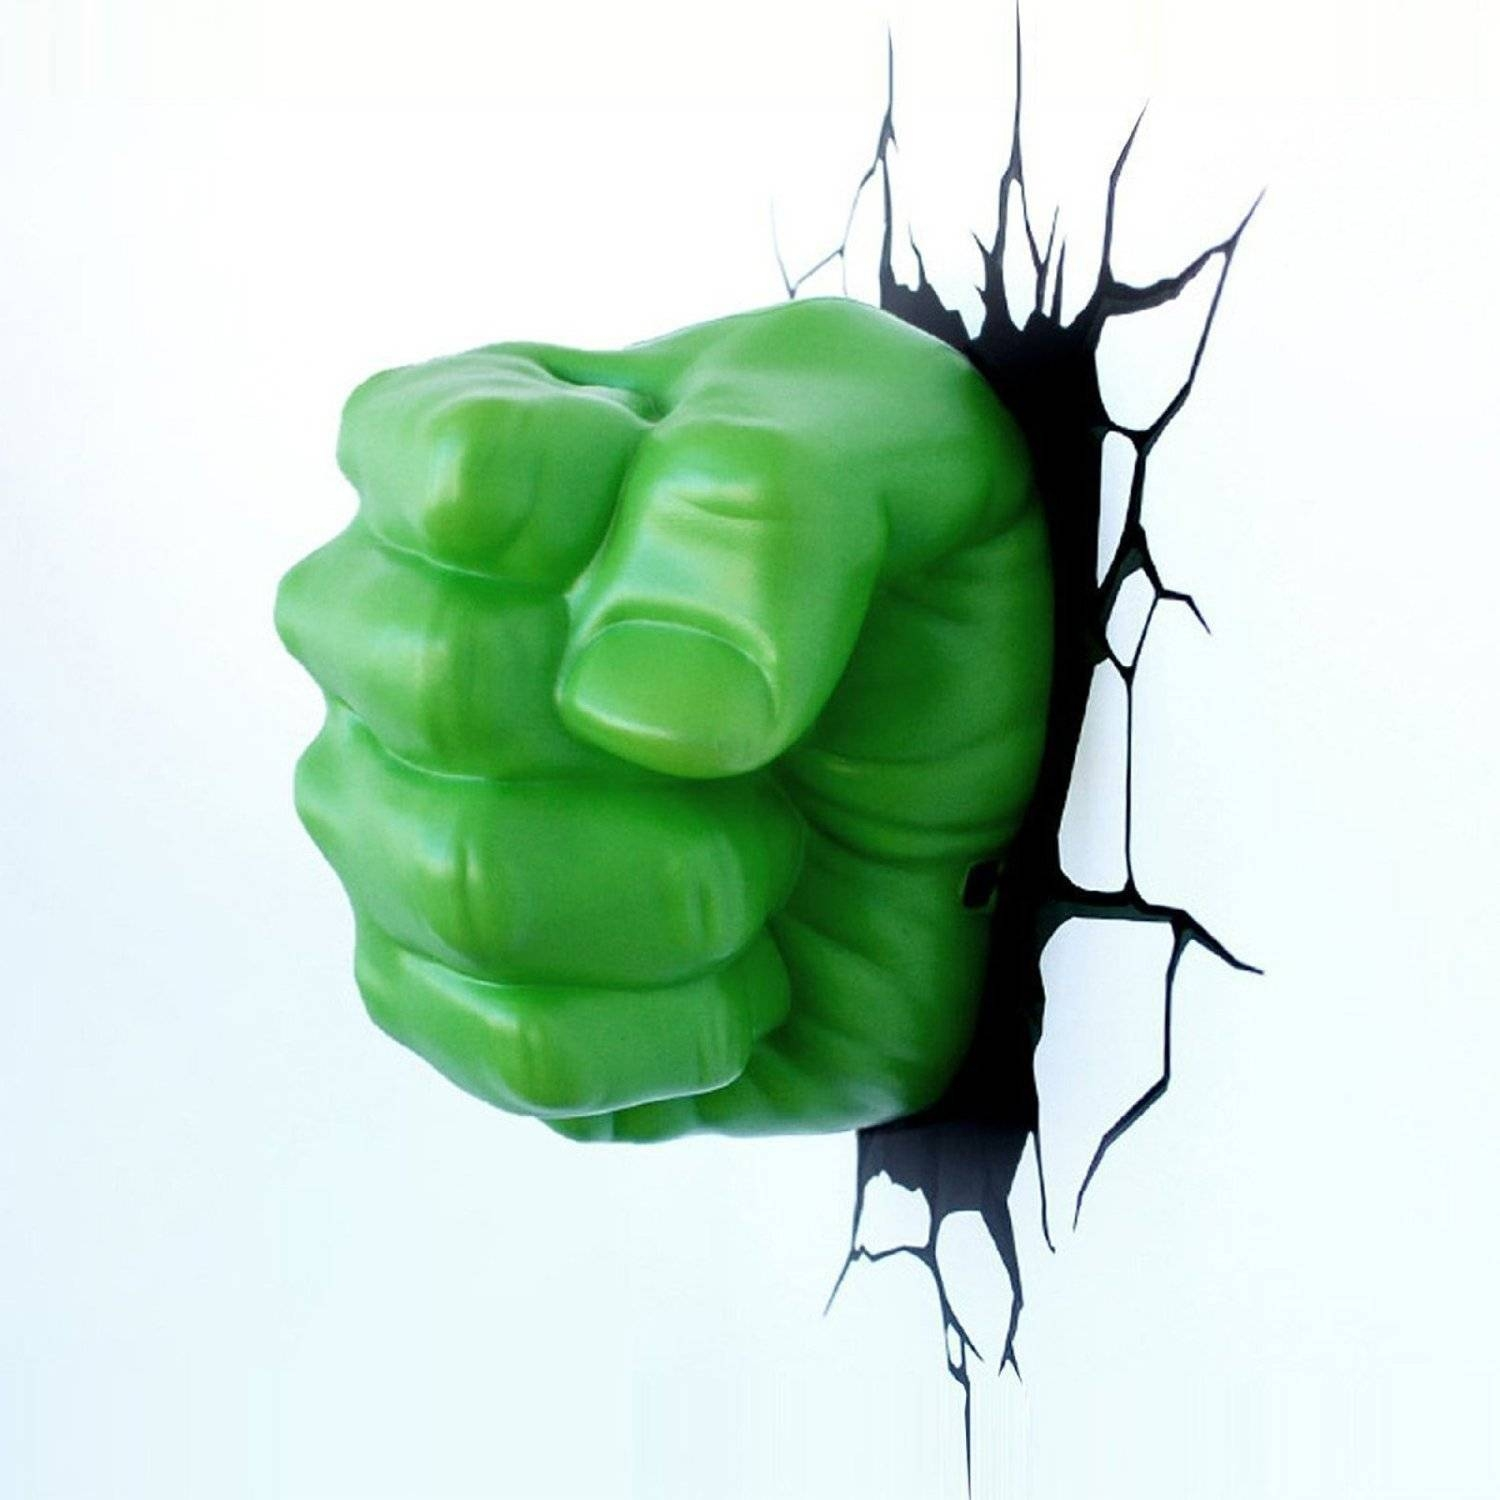 Incredible Hulk Fist Smash 3d Wall Light – Lolcoolstuff Throughout 2017 Hulk Hand 3d Wall Art (View 3 of 20)